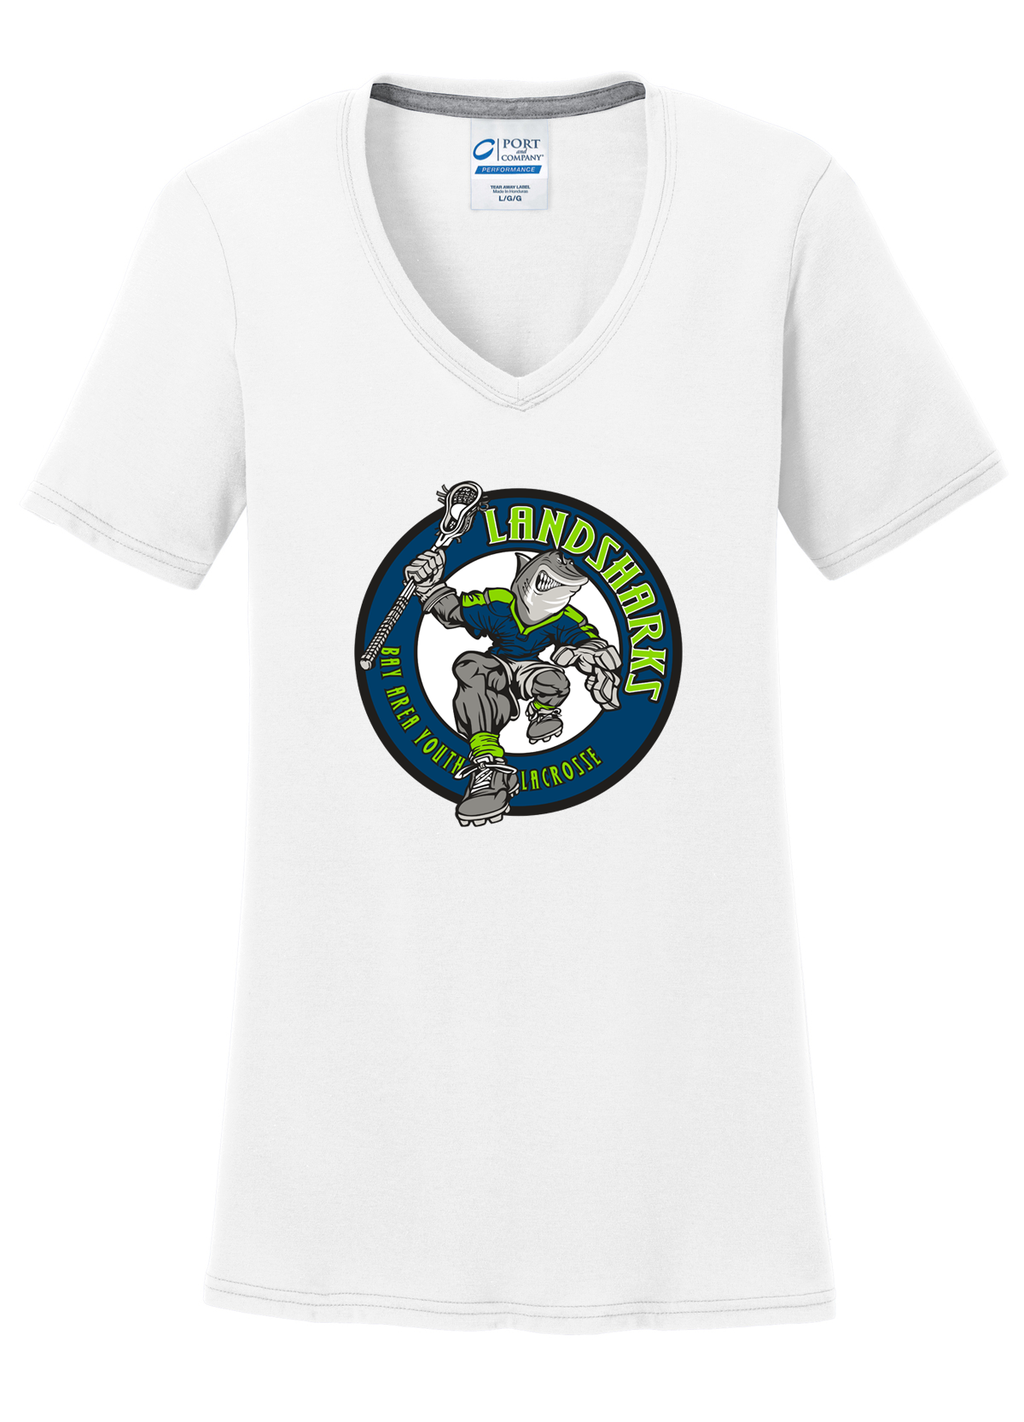 Bay Area Landsharks Women's White T-Shirt